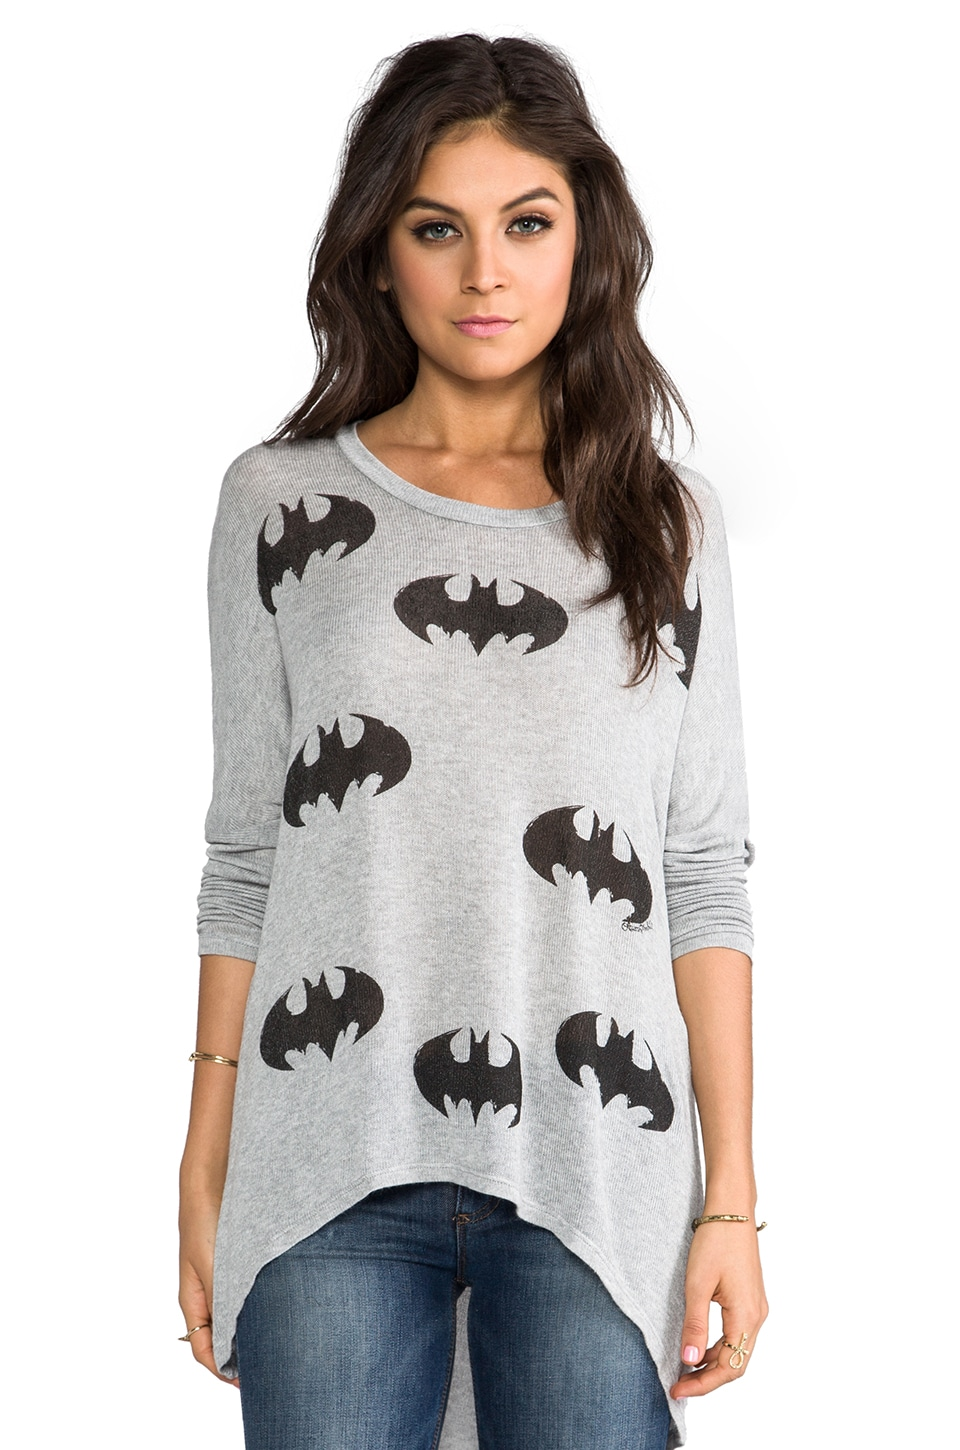 Lauren Moshi Deb Mini Batman Asymmetrical Sweater in Heather Grey